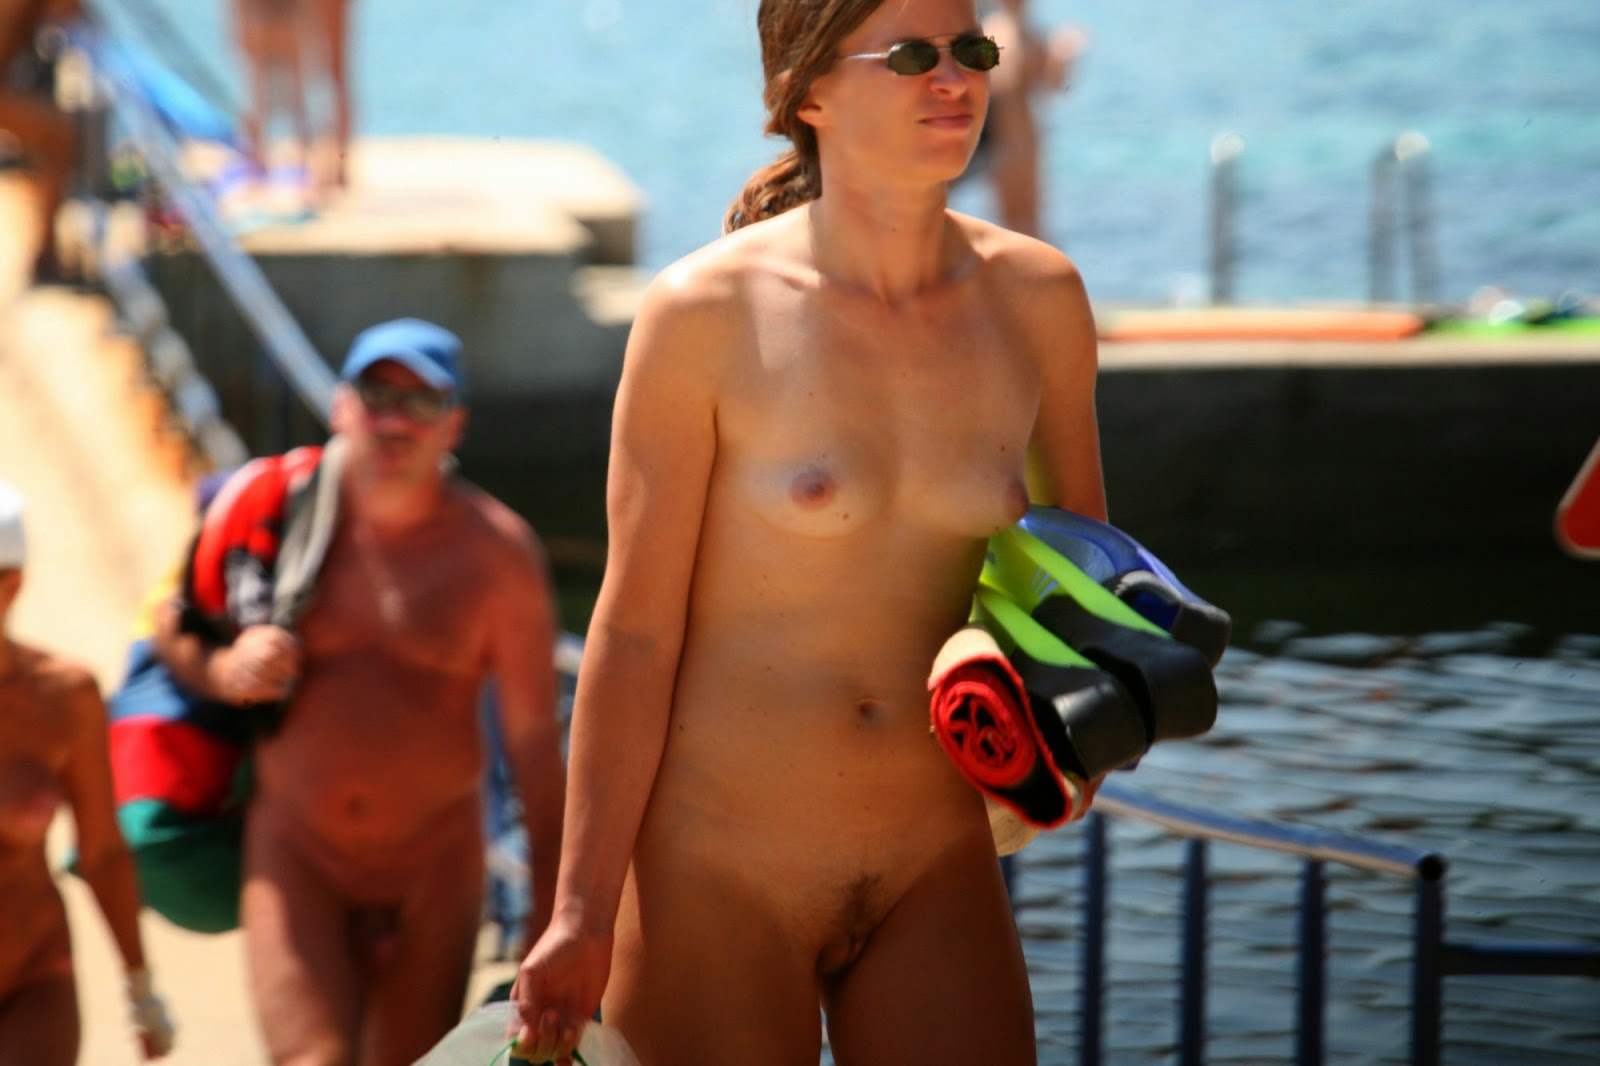 Croatia nudist family you tell